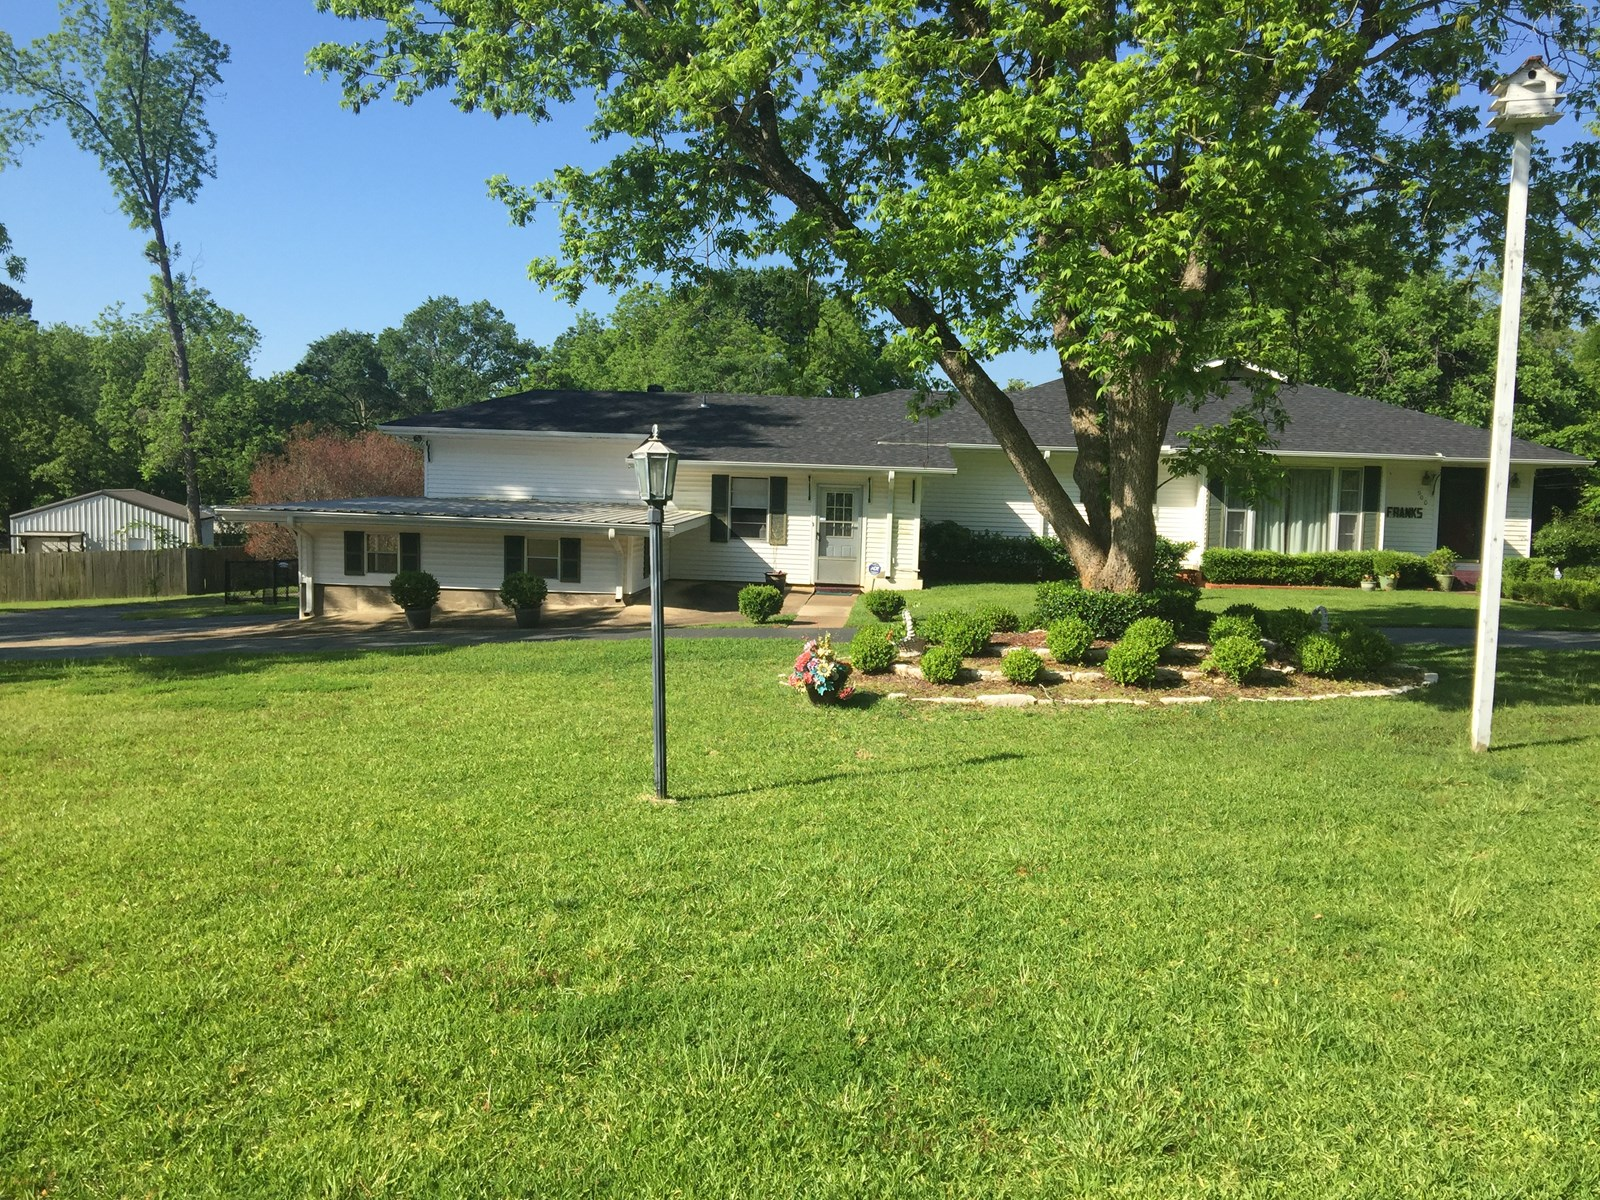 Home for Sale, Rusk, TX